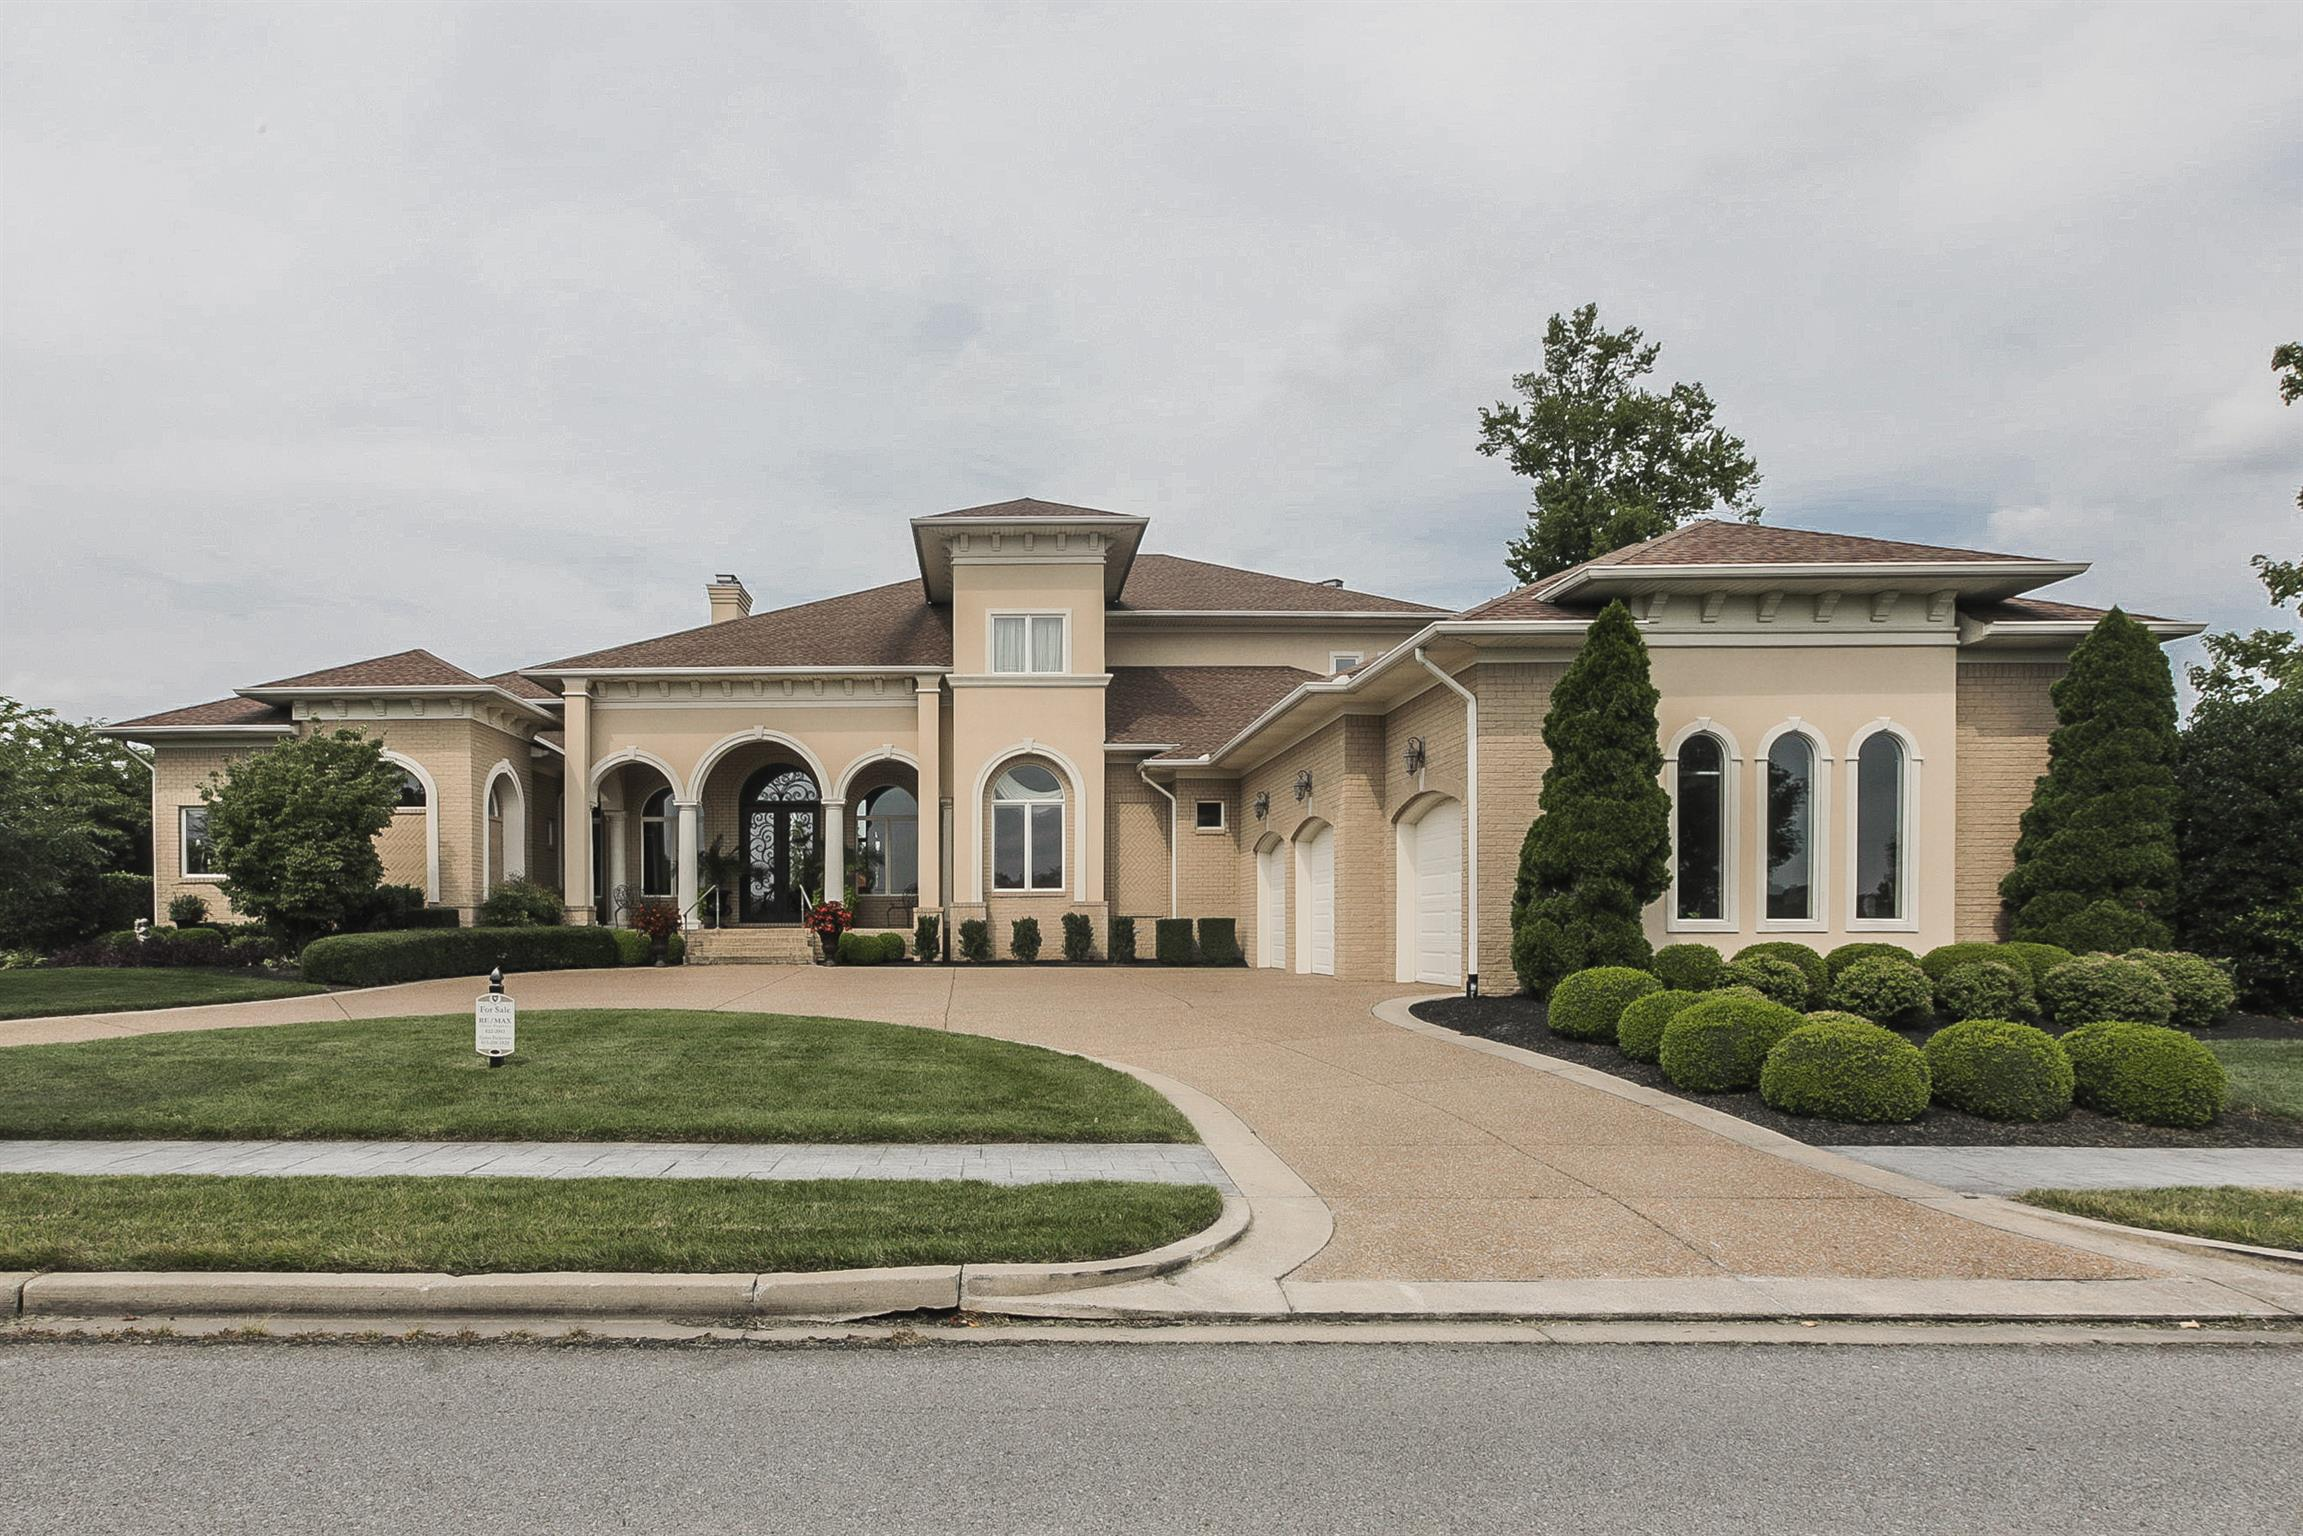 1110 Plantation Blvd, one of homes for sale in Gallatin